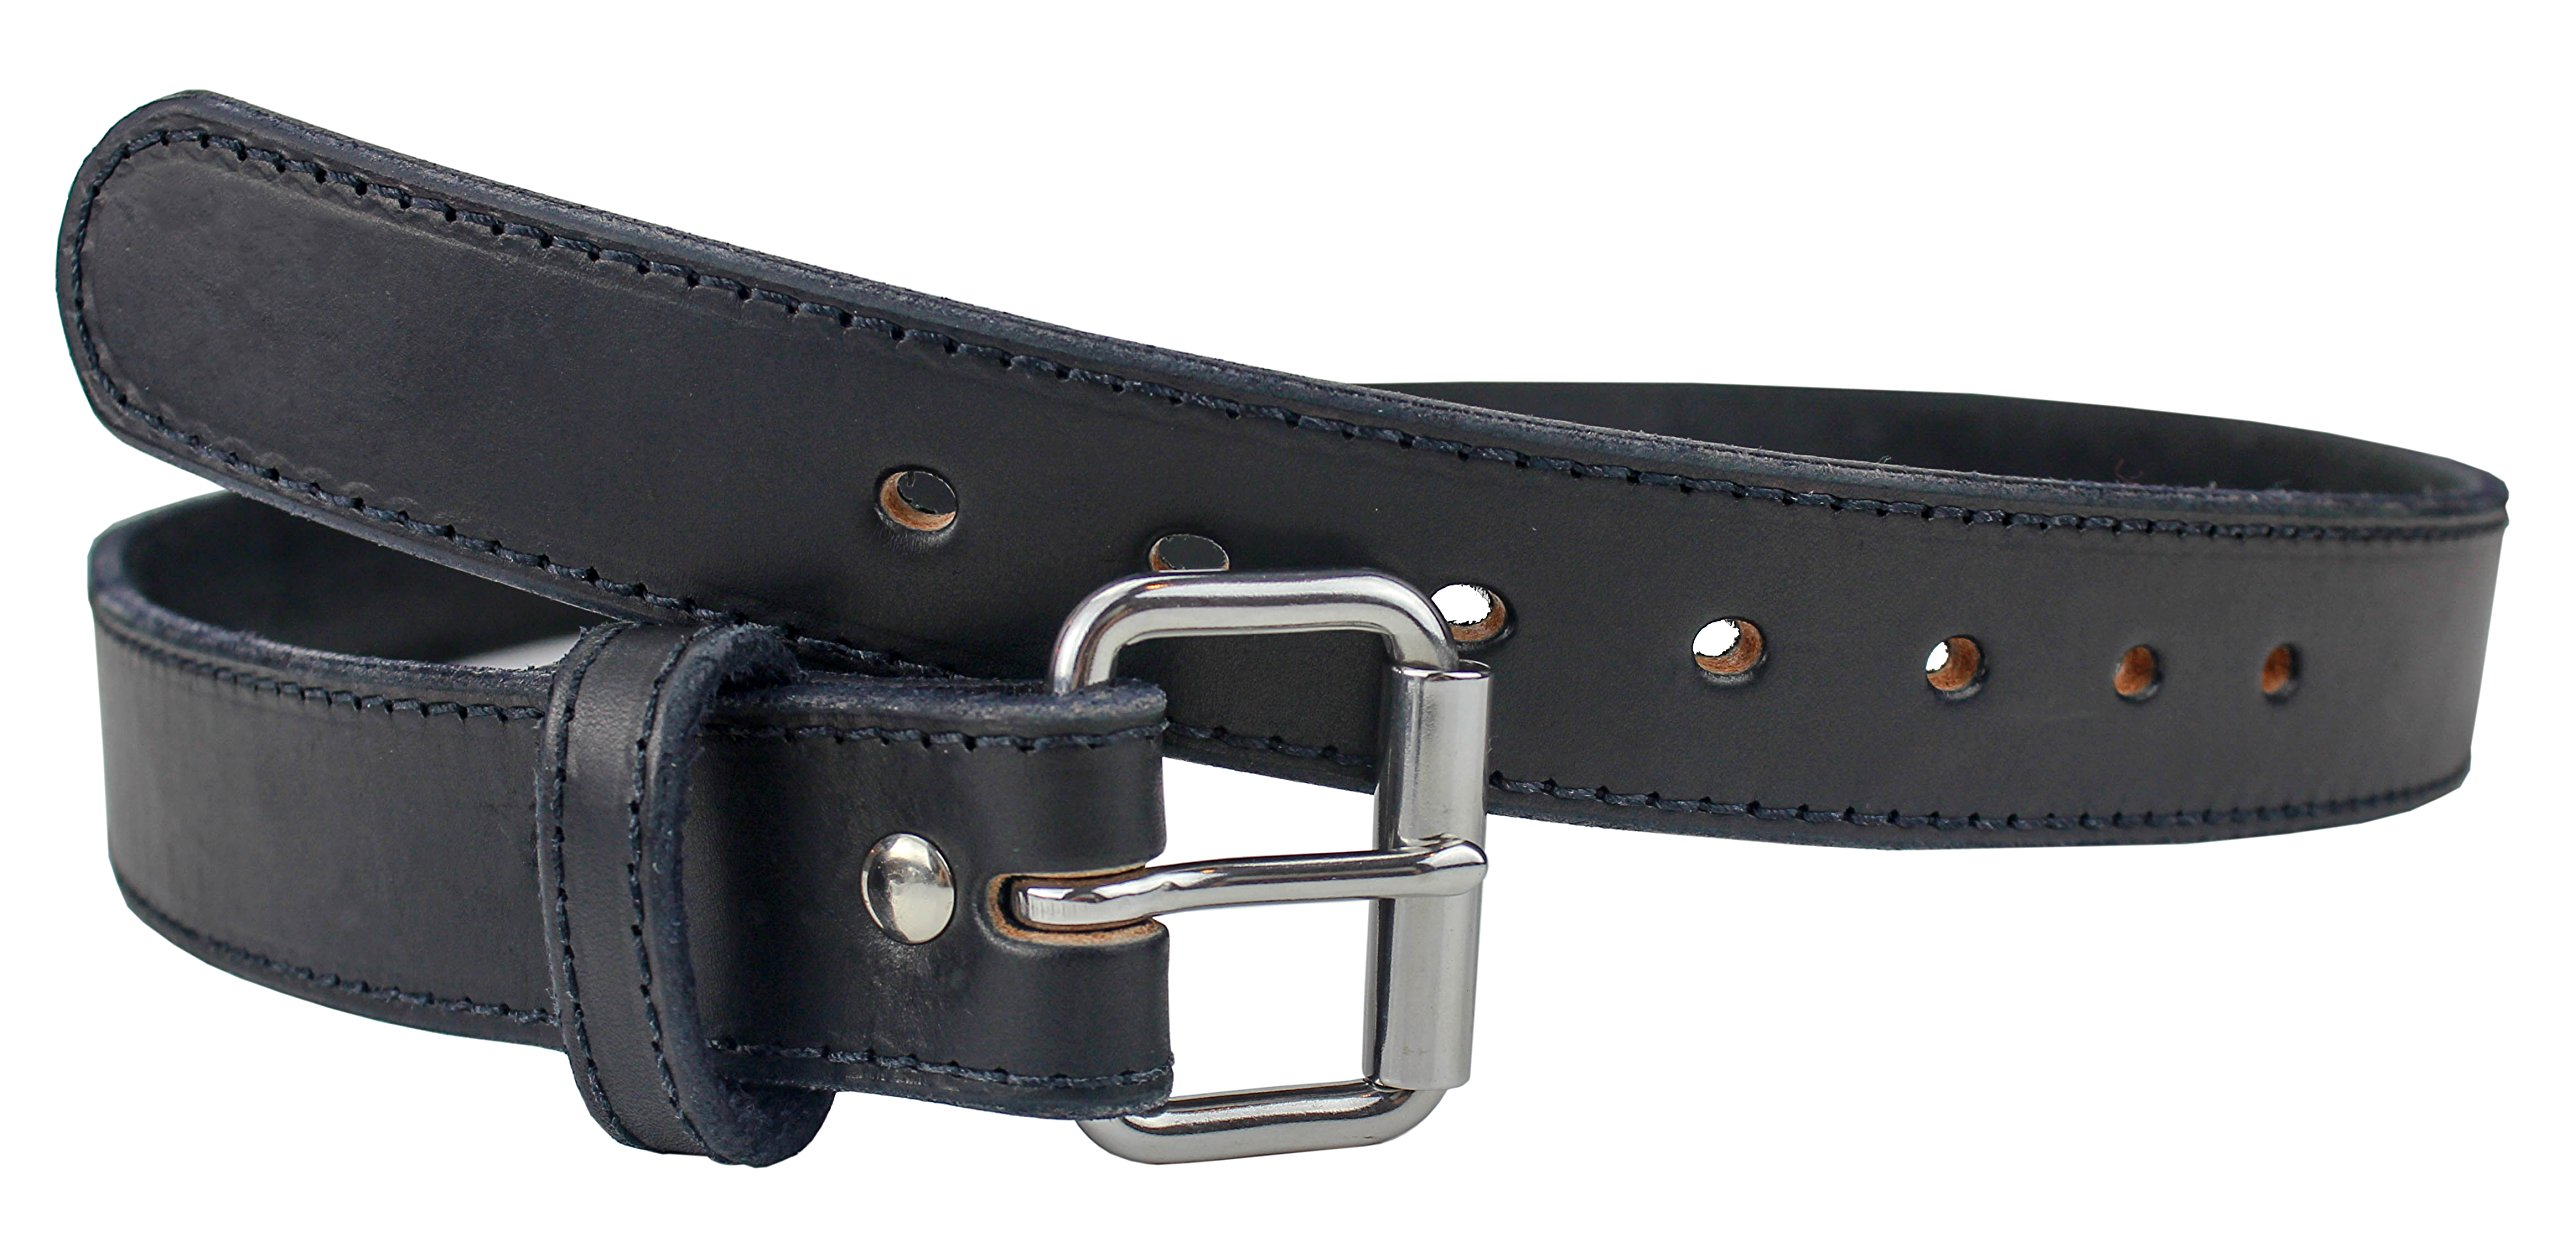 The Ultimate Steel Core Gun Belt | Concealed Carry CCW Leather Gun Belt With Steel Insert | Made in the USA | The Toughest 1 1/2 inch Premium Heavy Duty Leather Gun Belt | Black 32